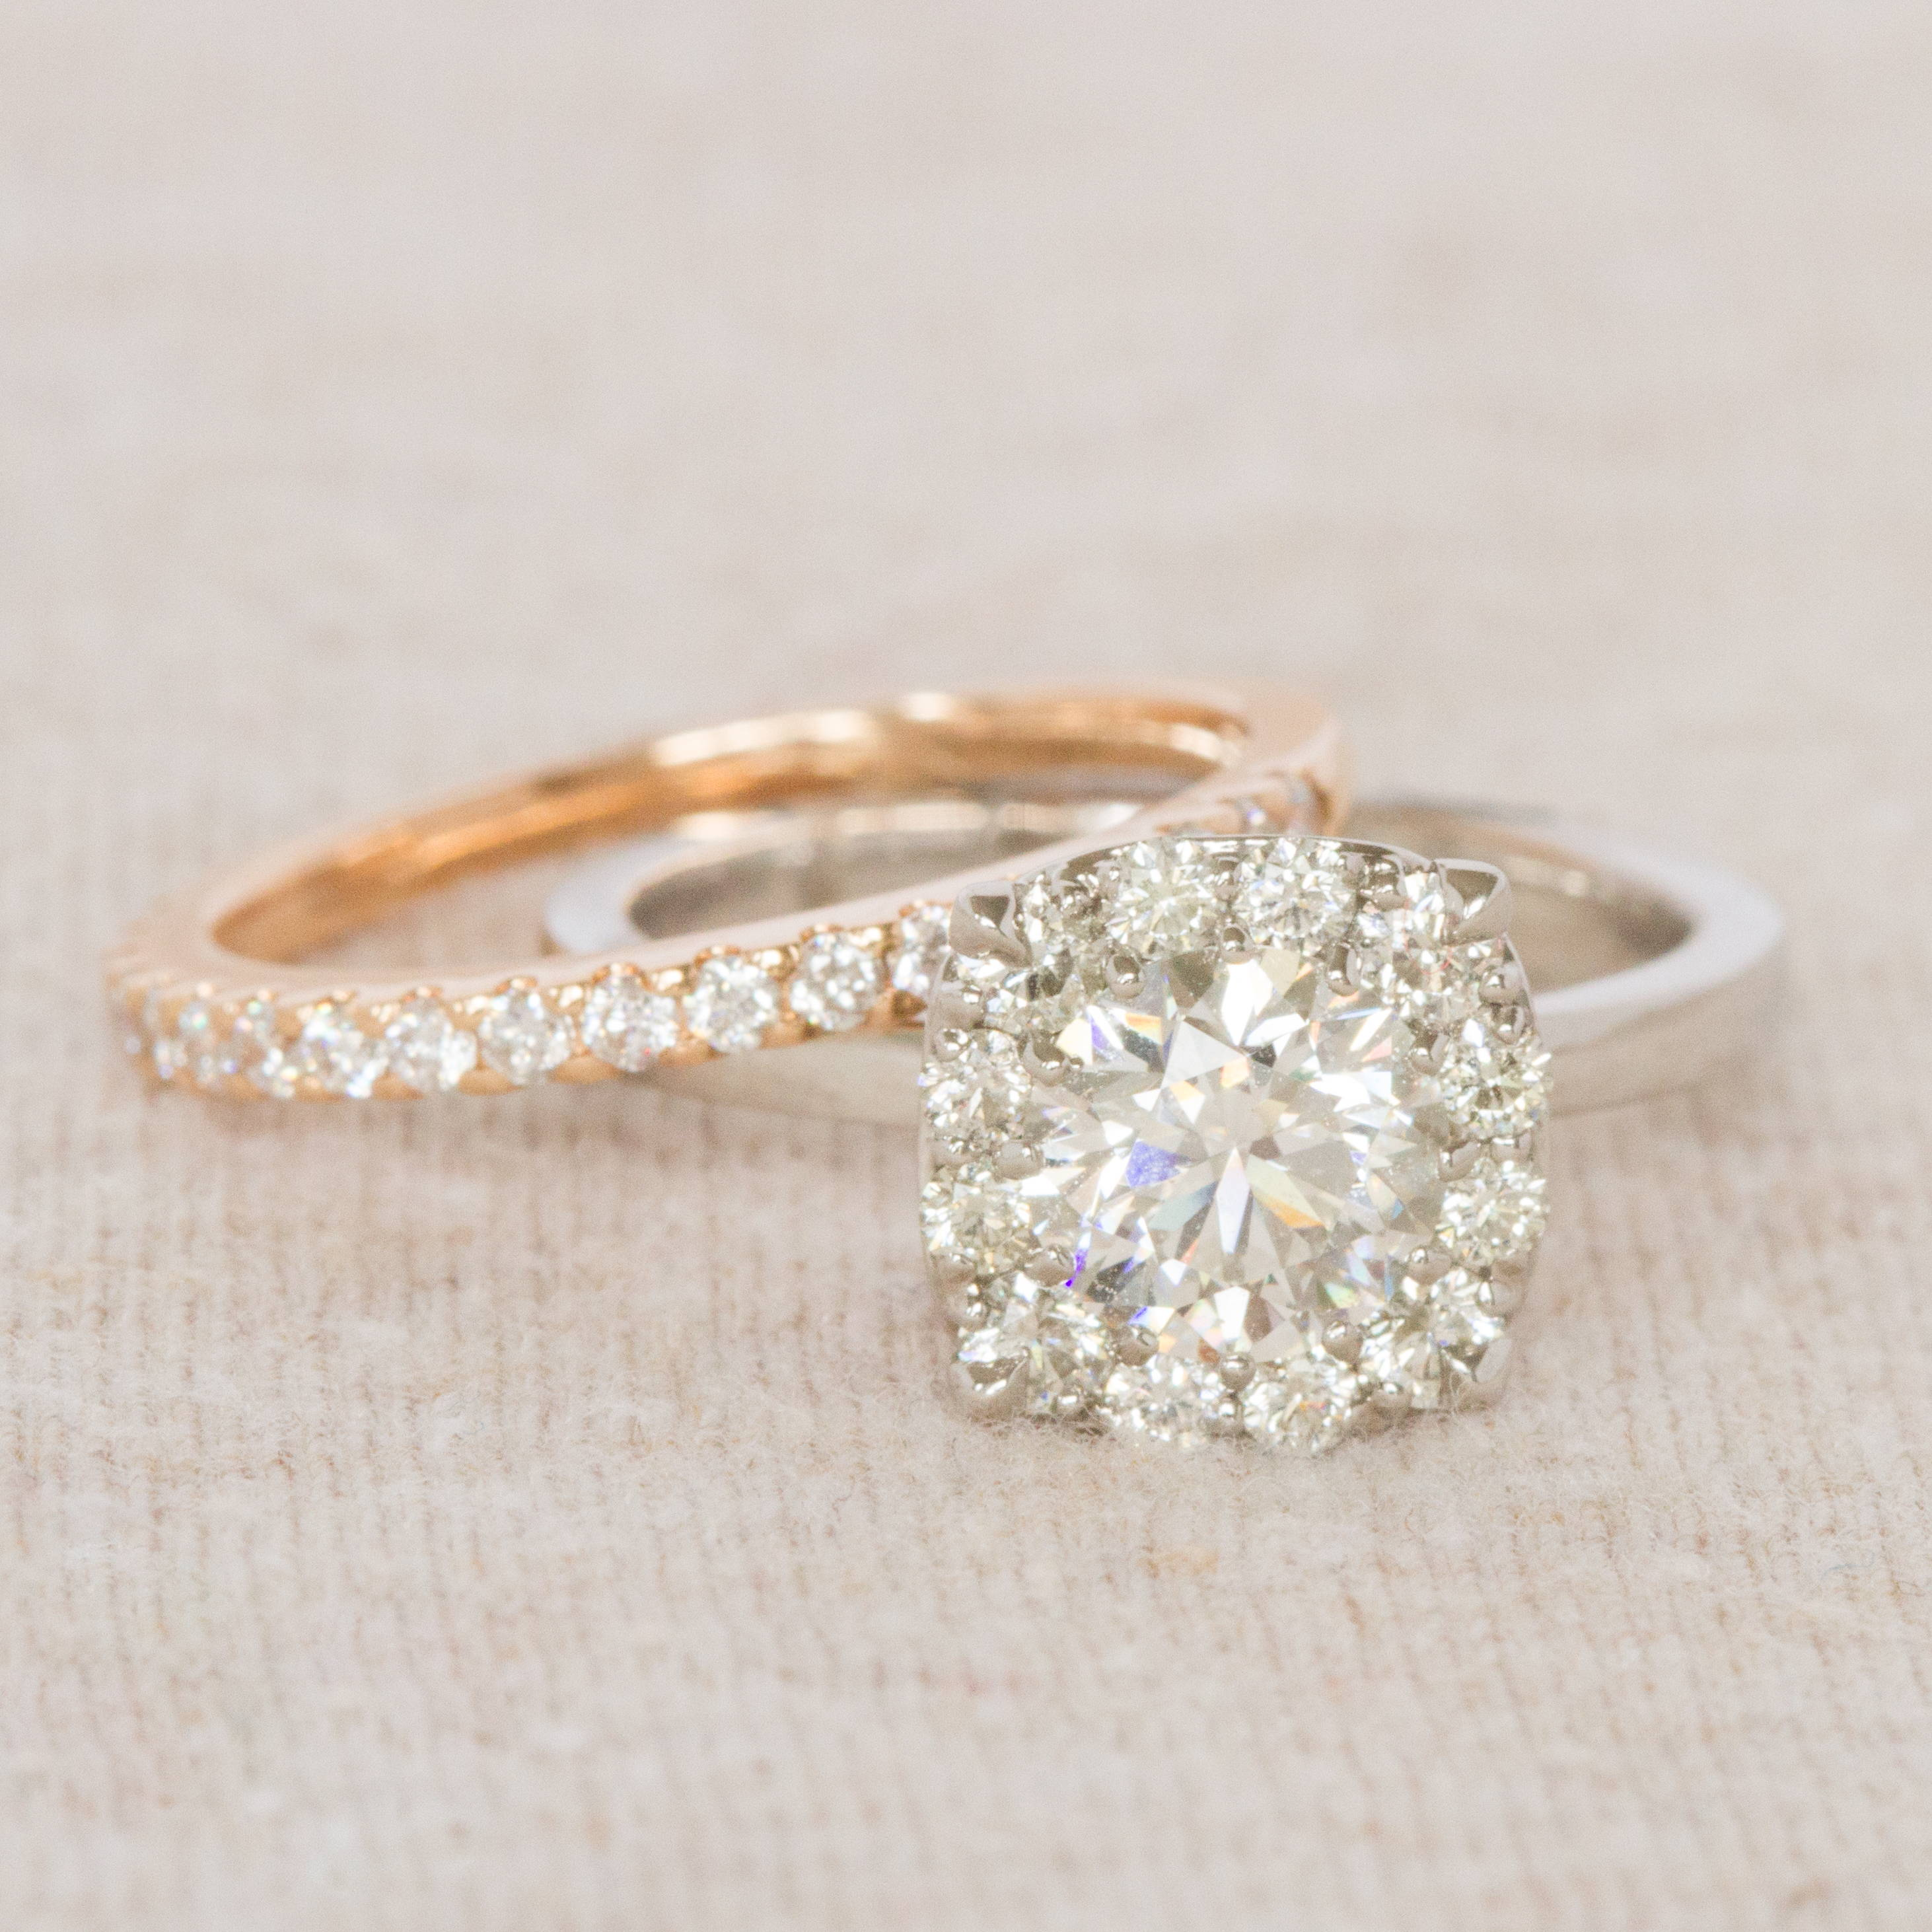 Schiffman's Engagement Ring and Wedding Band